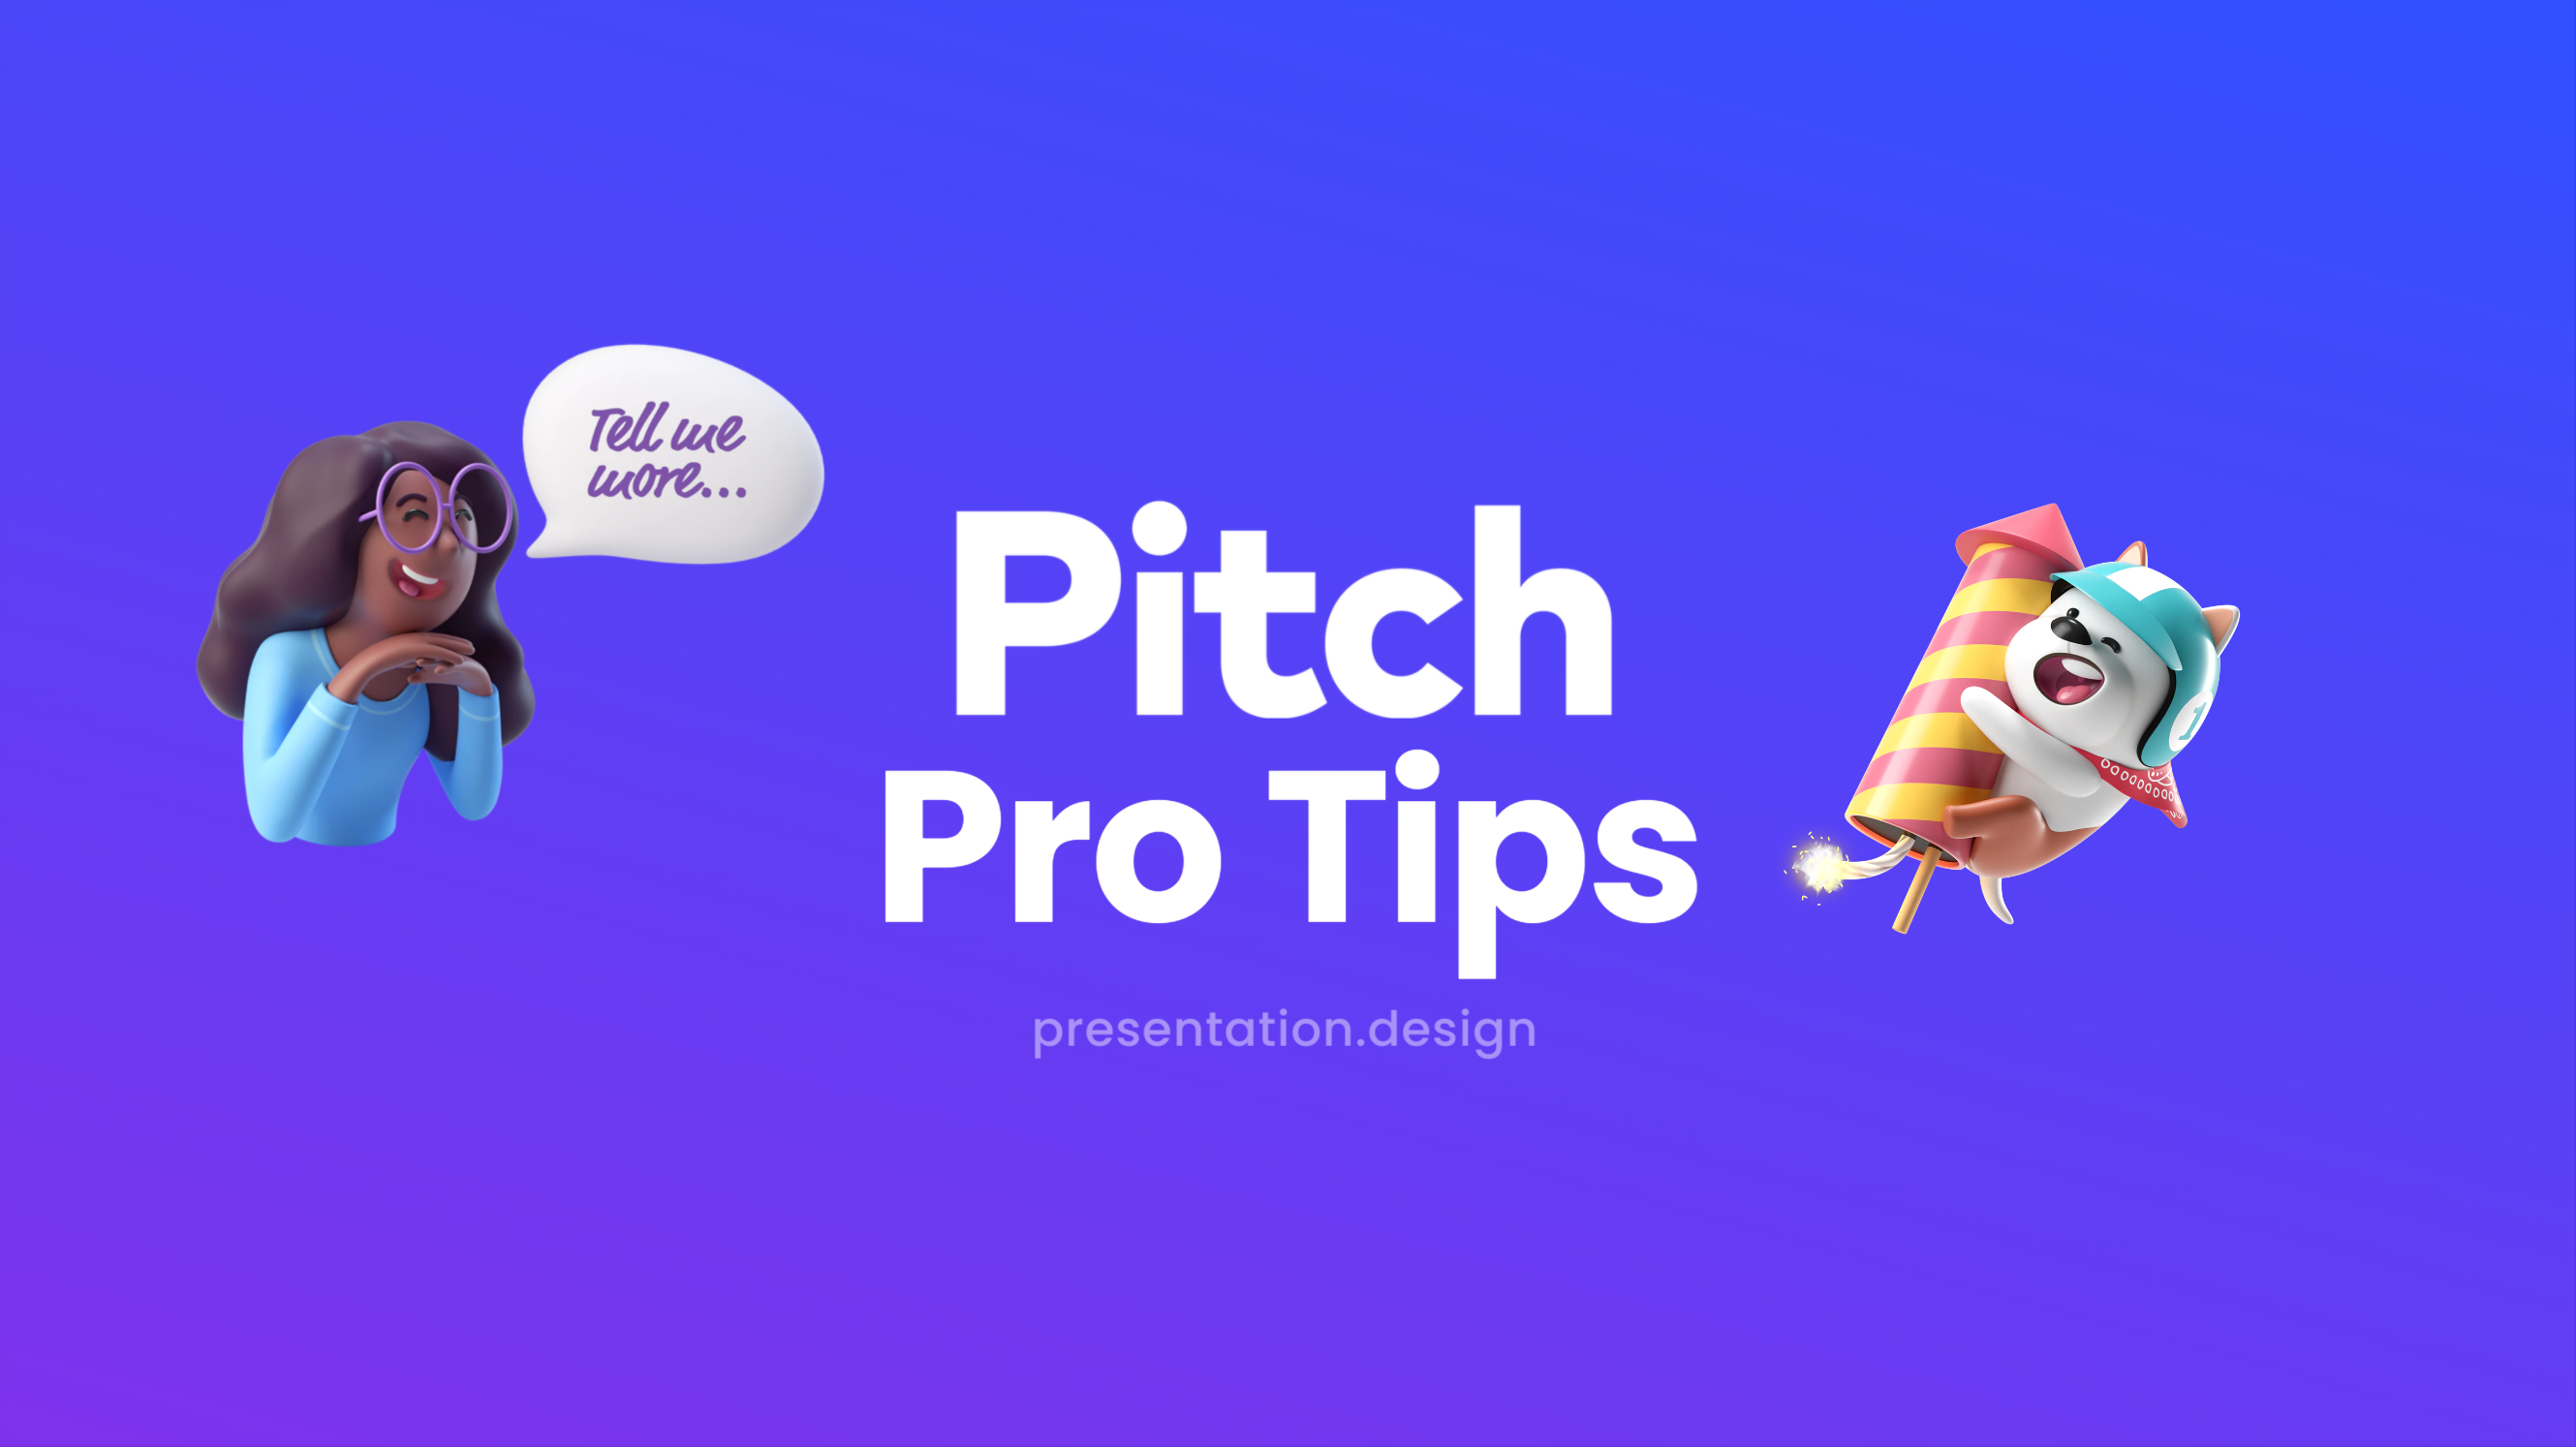 Pitch Pro Tips with 3D renders